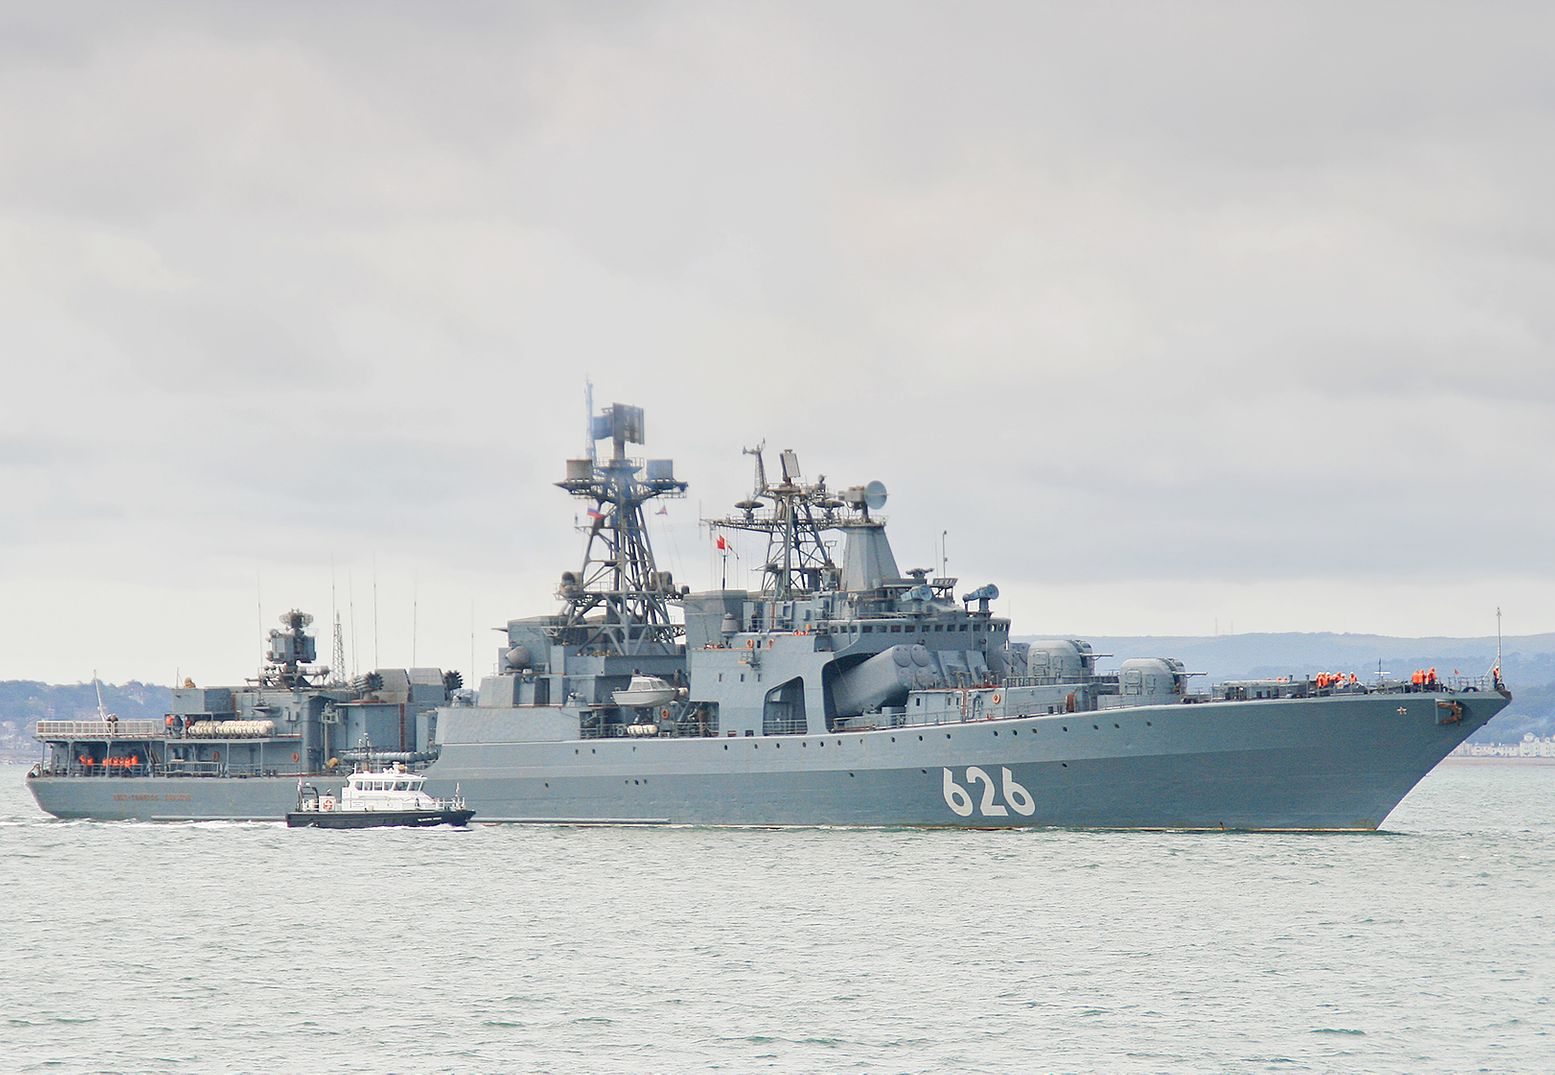 Wargames: How Russia Practices Invading Iceland in War Games